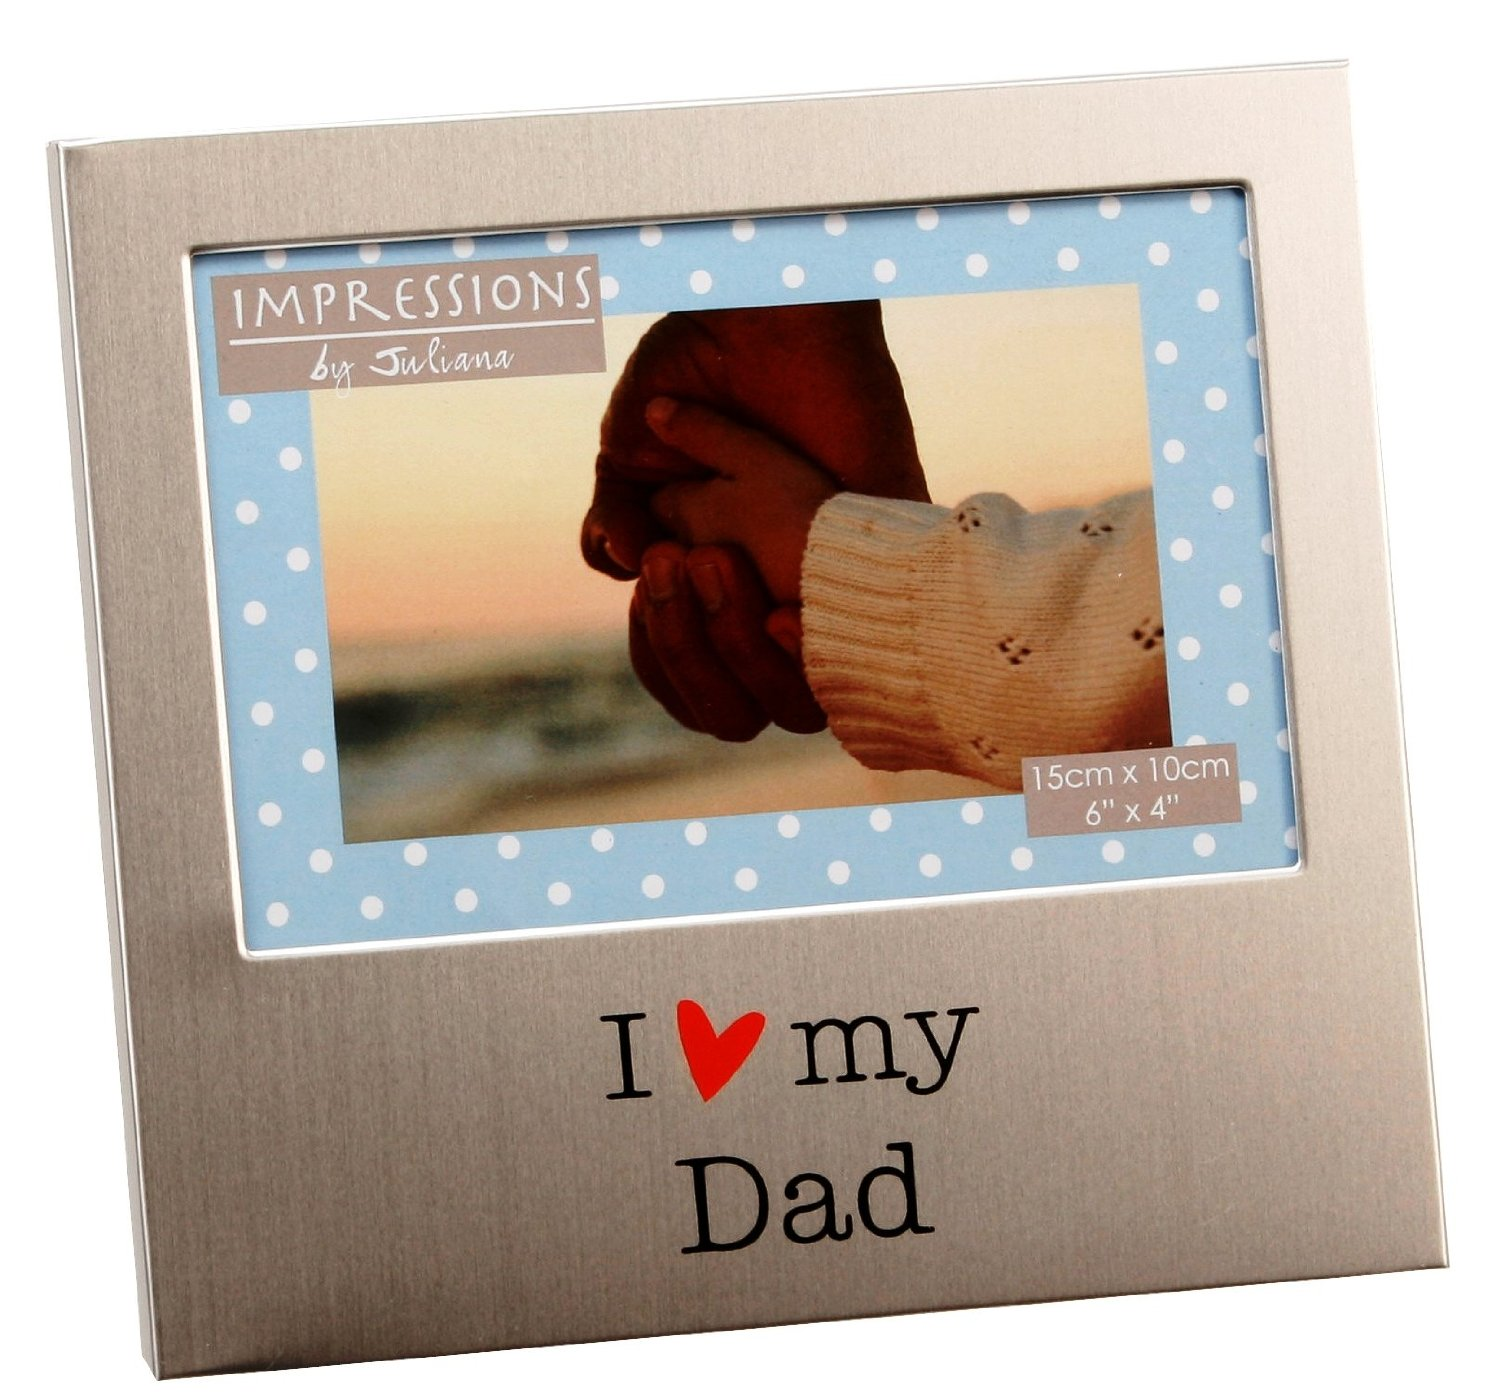 I Love My Dad 6 X 4 Photo Frame Gifts